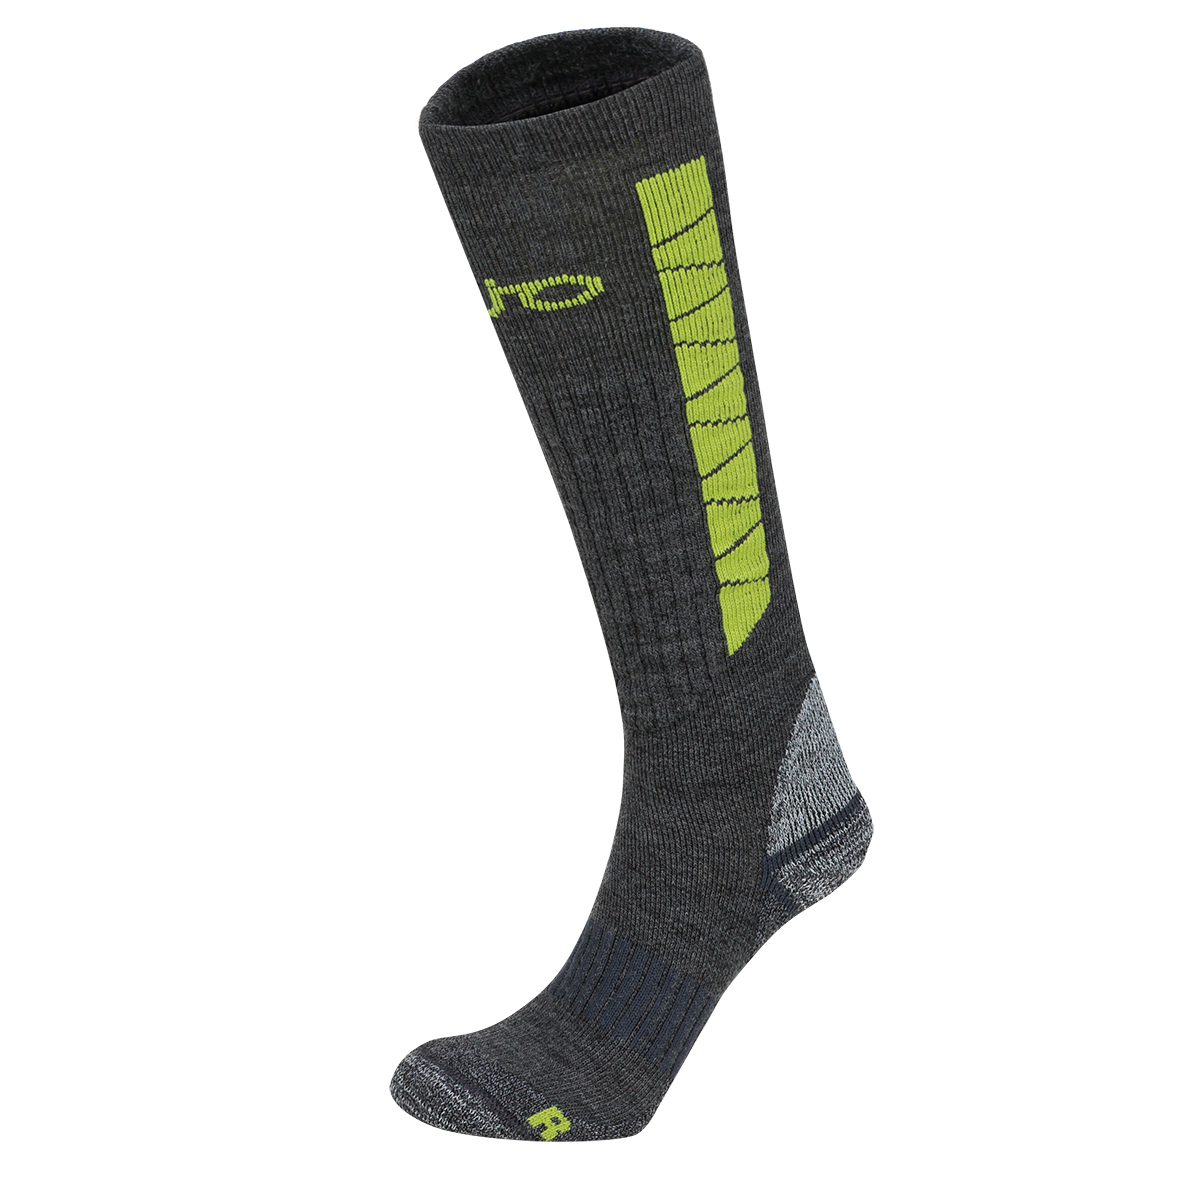 Sosete De Ski Zajo Heavy Outdoor Long - Gri/lime